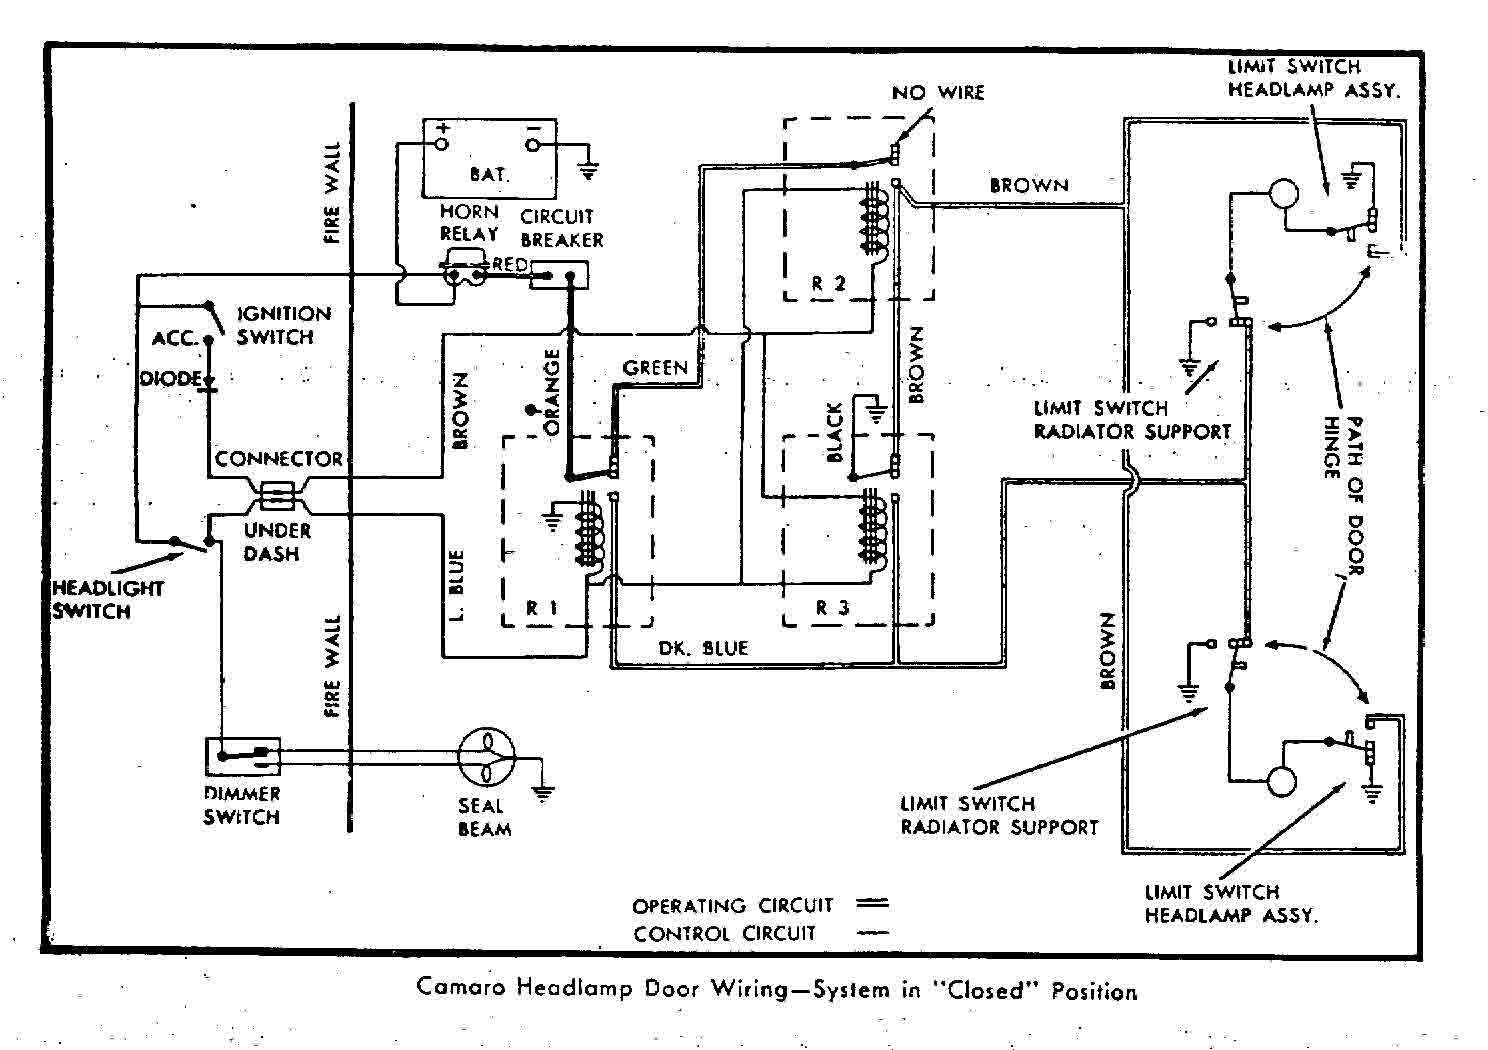 1967 Camaro Wiring Schematic Data Diagram Schema 1968 Mustang Harness Chevy Rs Third Level Dash